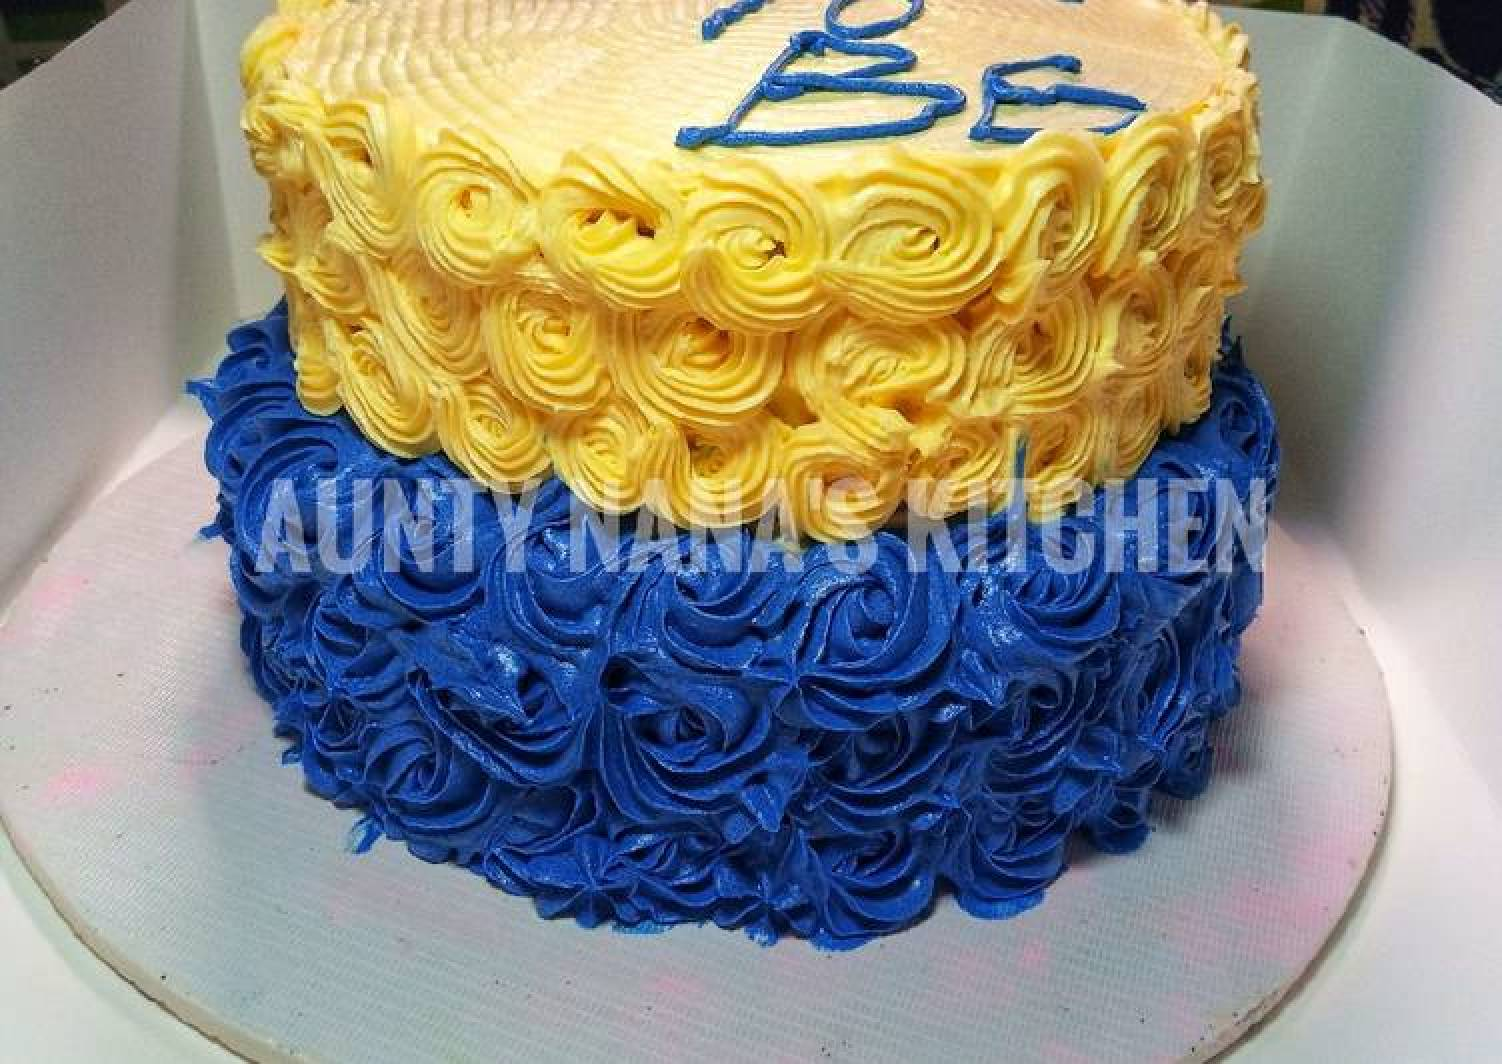 Butter icing